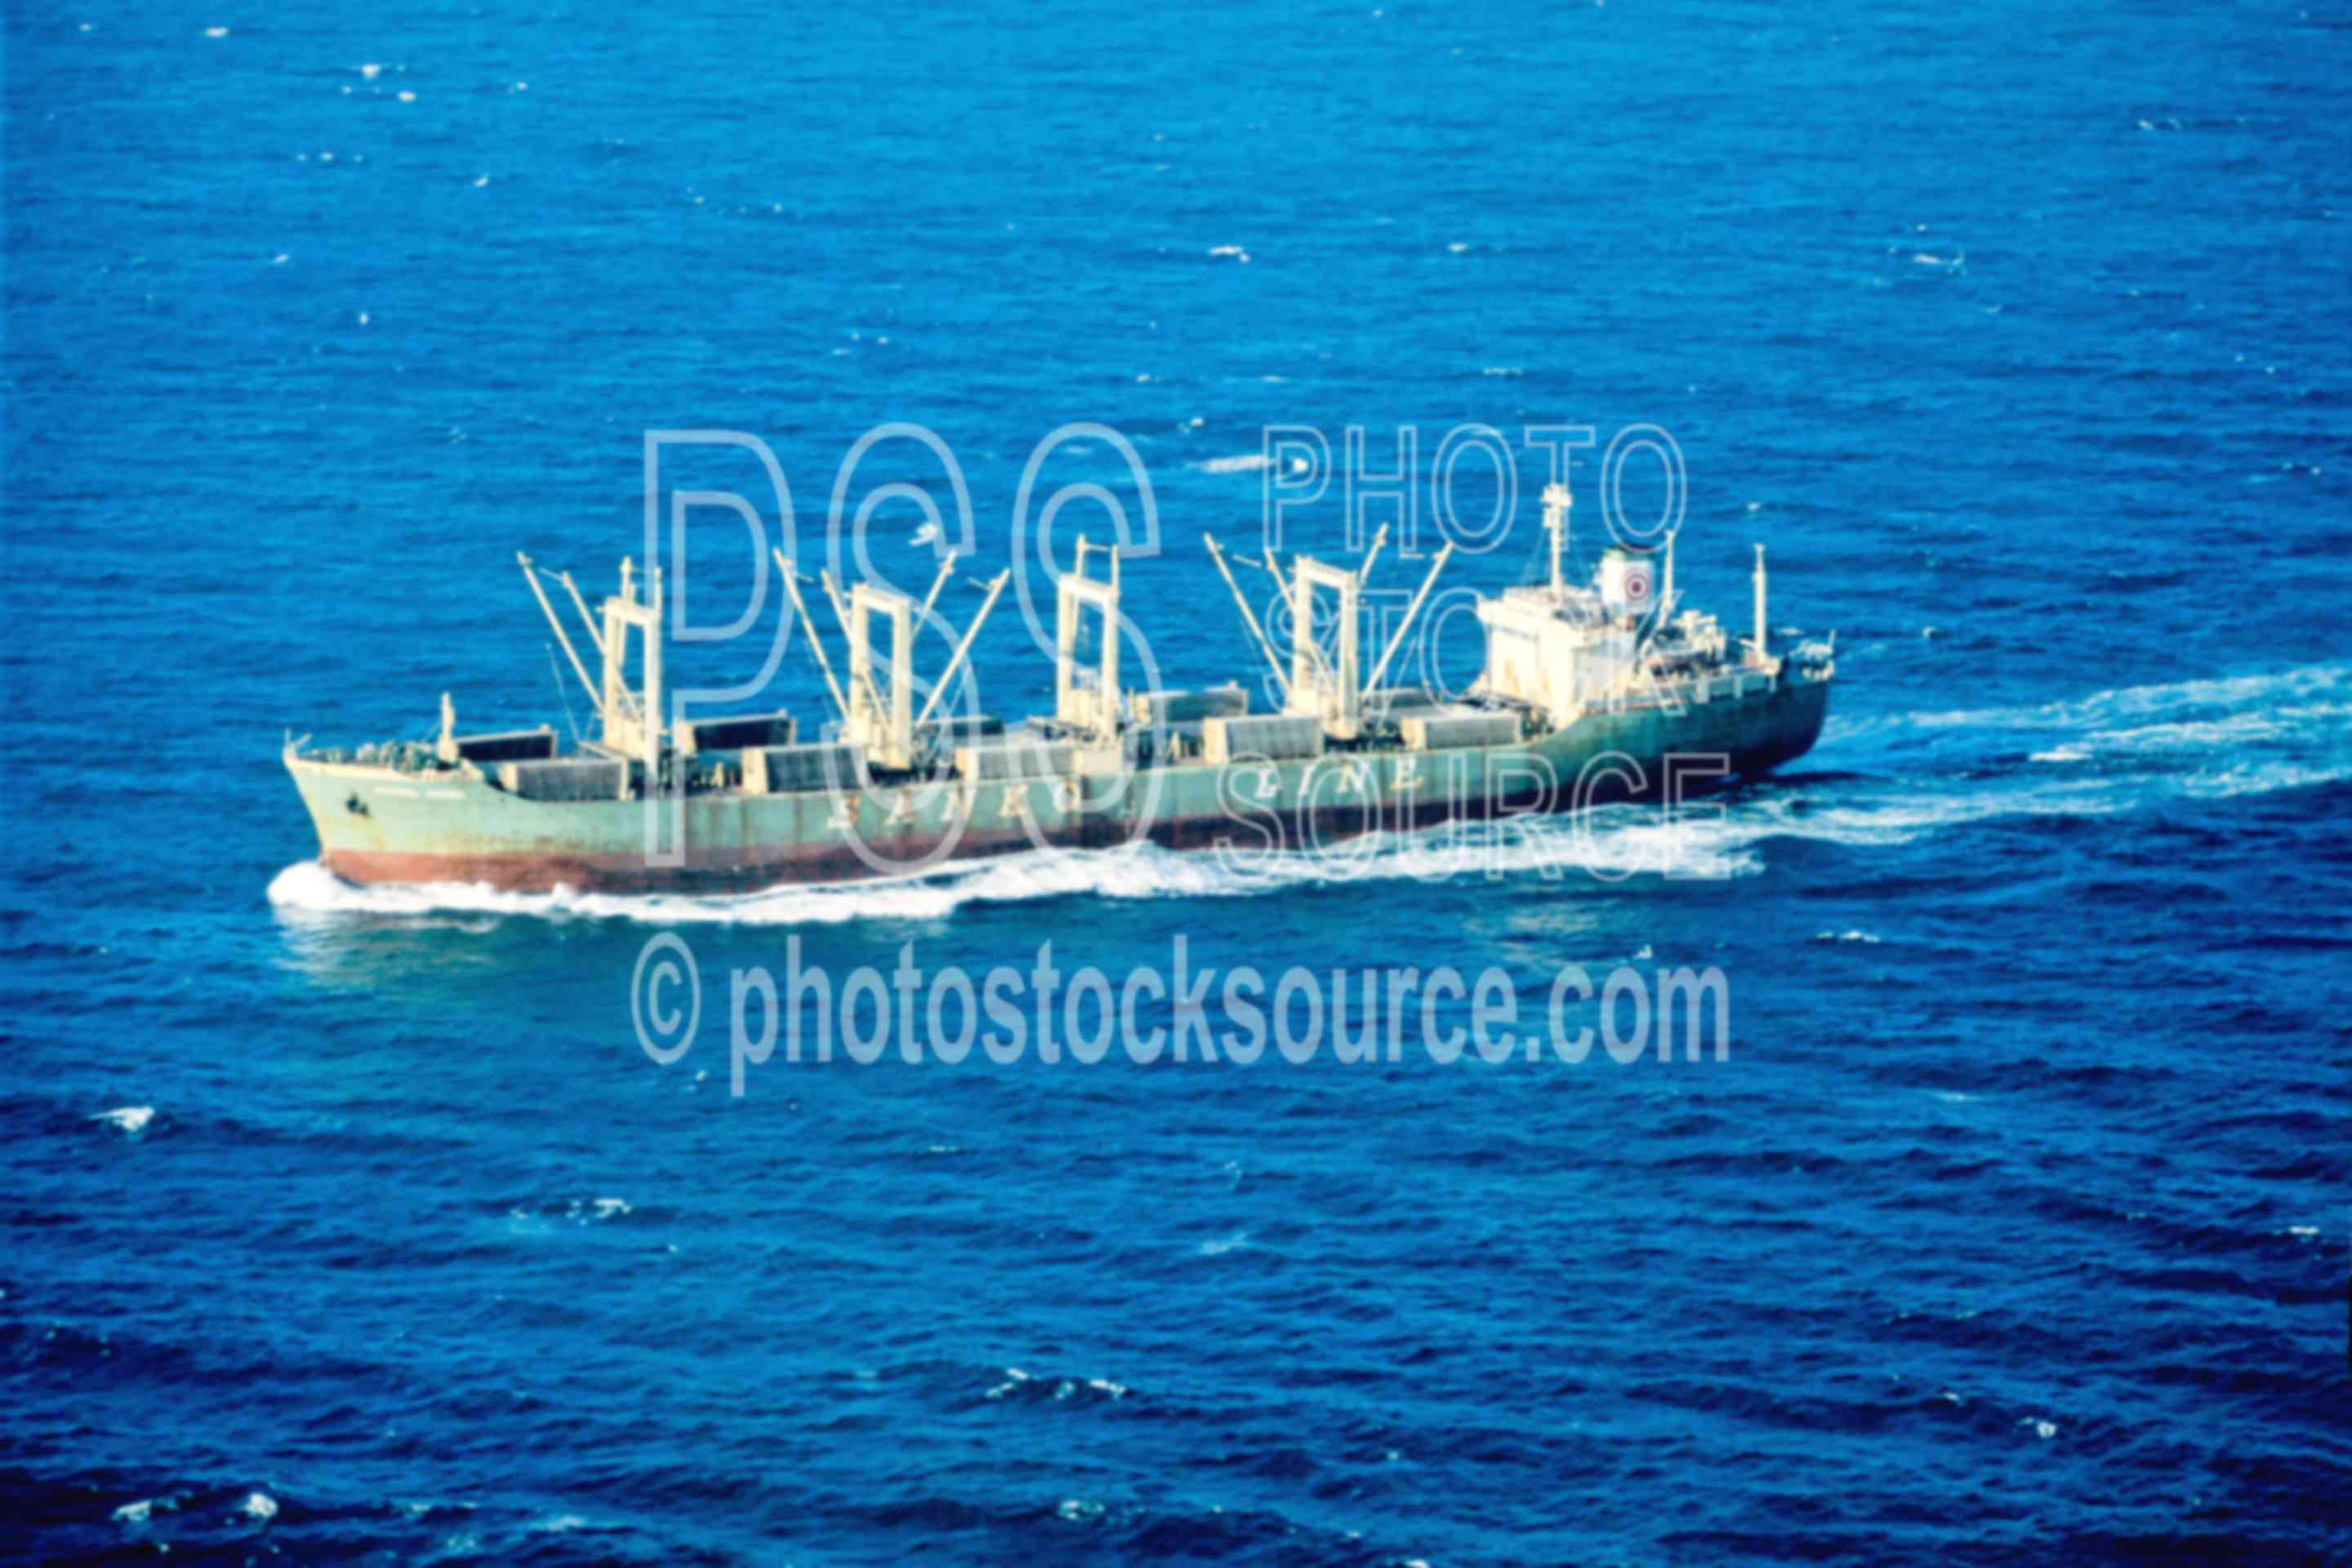 Freighter on the Ocean,freighter,ocean,ship,aerial,usas,aeronautics,boats,aerials